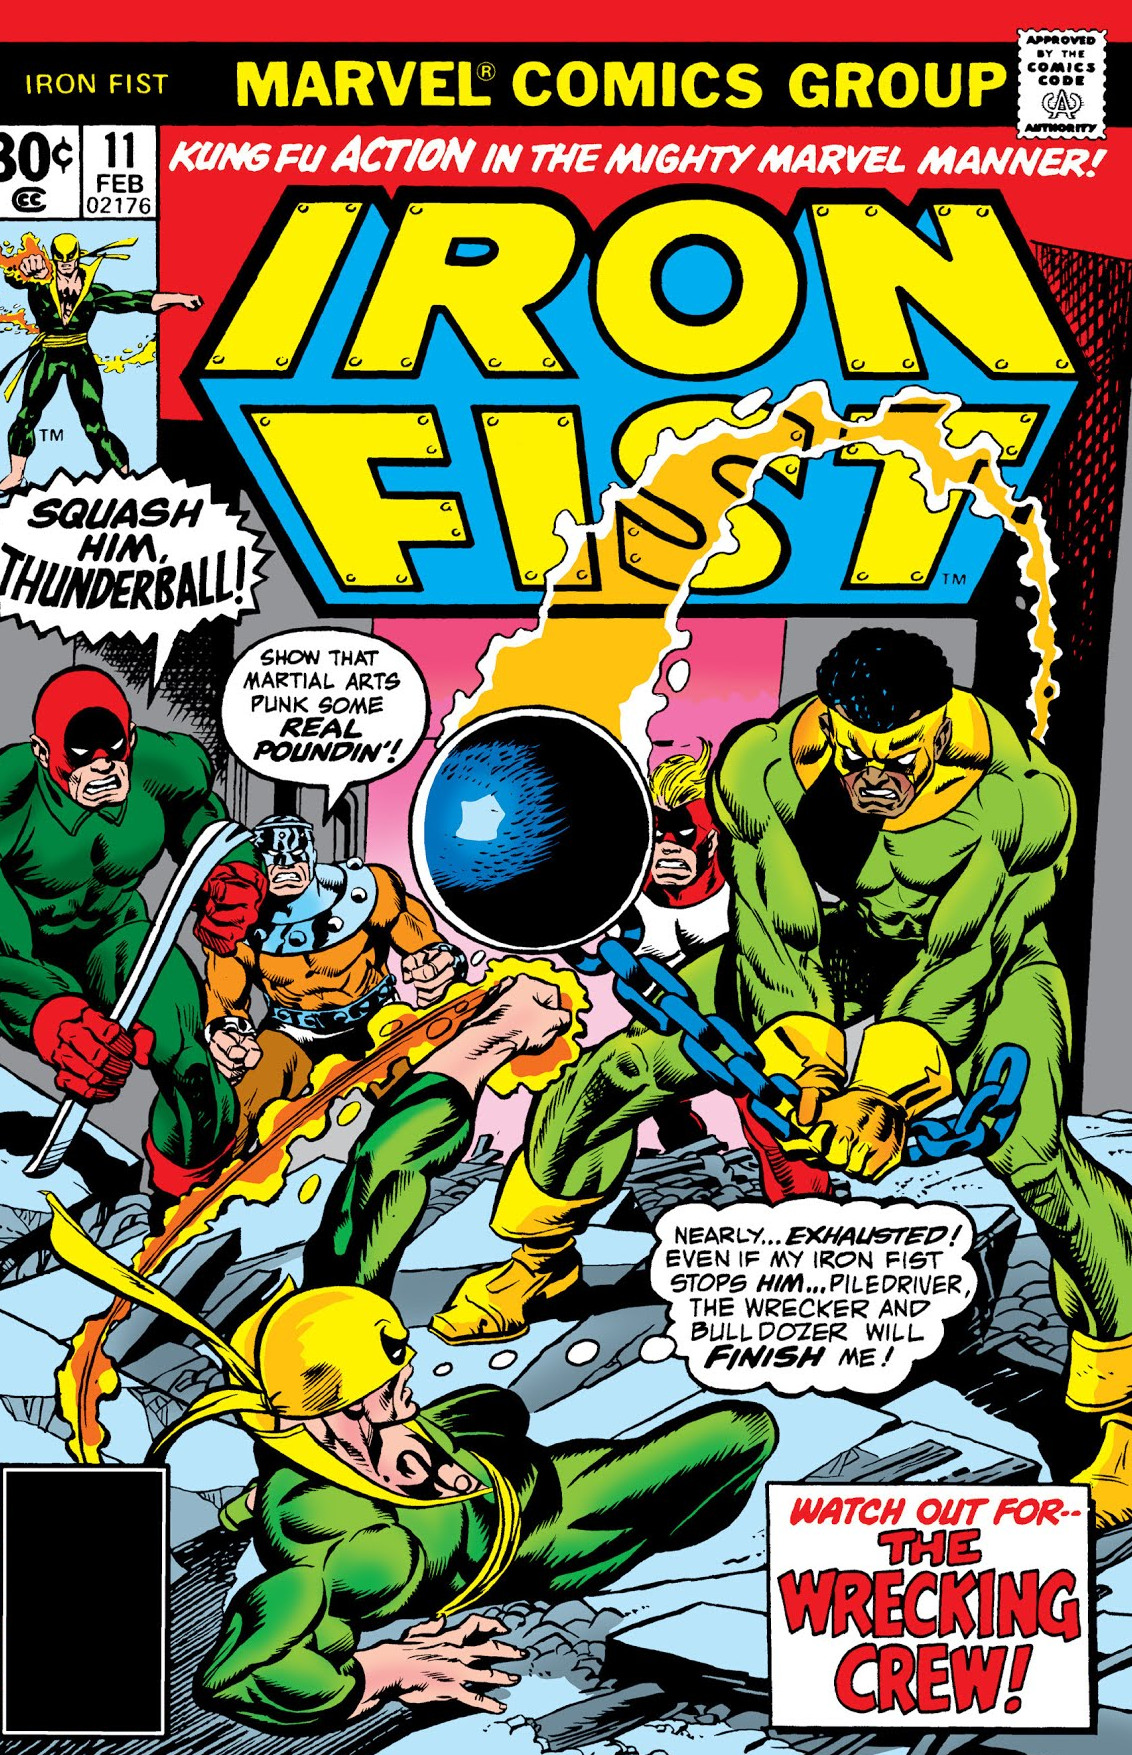 Iron Fist Vol 1 11